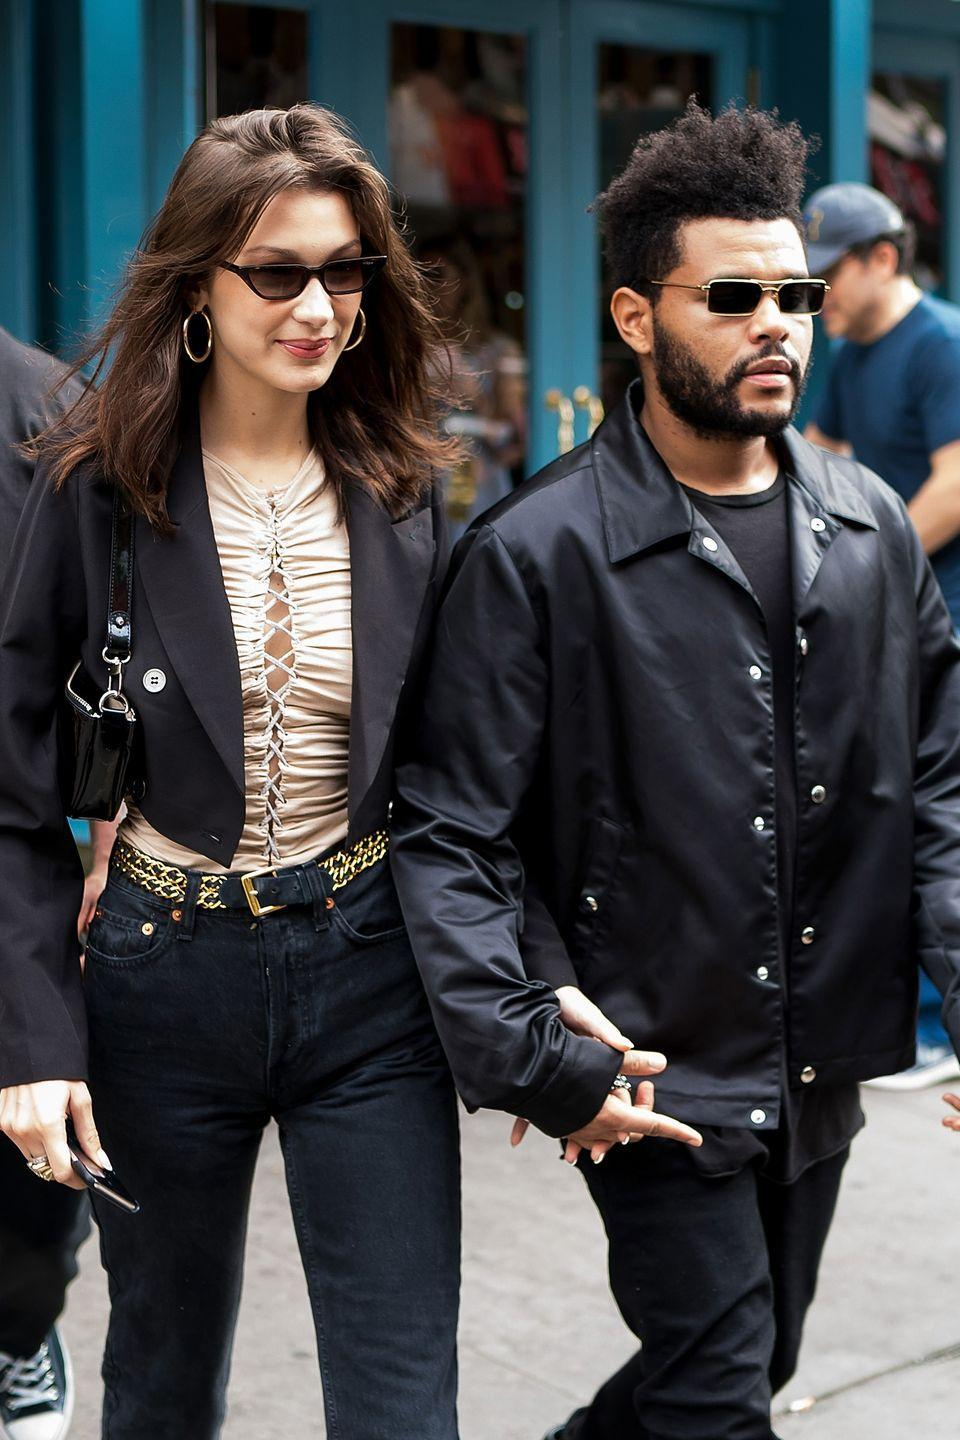 "<p>Top model Bella Hadid and hit singer The Weeknd definitely make one stylish couple. After dating for a year, the two split in 2016, where The Weeknd then <a href=""https://www.harpersbazaar.com/celebrity/latest/a13120861/selena-gomez-the-weeknd-breakup/"" rel=""nofollow noopener"" target=""_blank"" data-ylk=""slk:linked up"" class=""link rapid-noclick-resp"">linked up</a> with Selena Gomez. However, in 2018, Bella and Abel <a href=""https://www.harpersbazaar.com/celebrity/latest/a22705314/bella-hadid-and-the-weeknd-back-together-kylie-21st-birthday-party/"" rel=""nofollow noopener"" target=""_blank"" data-ylk=""slk:rekindled"" class=""link rapid-noclick-resp"">rekindled</a> their romance and have been going strong ever since. <br></p>"